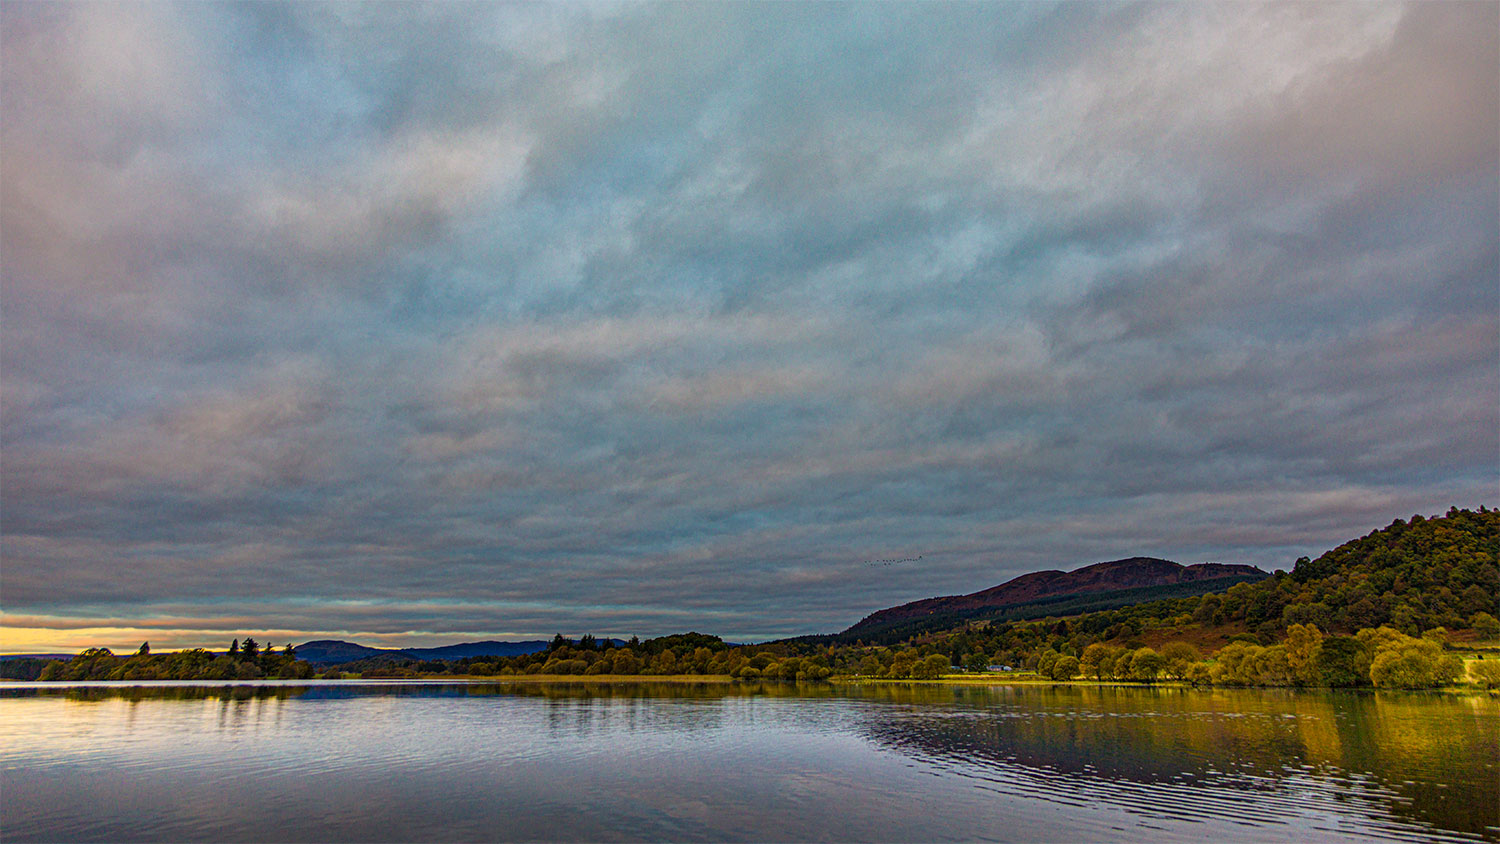 Menteith16Oct20_4326-HDR.jpg